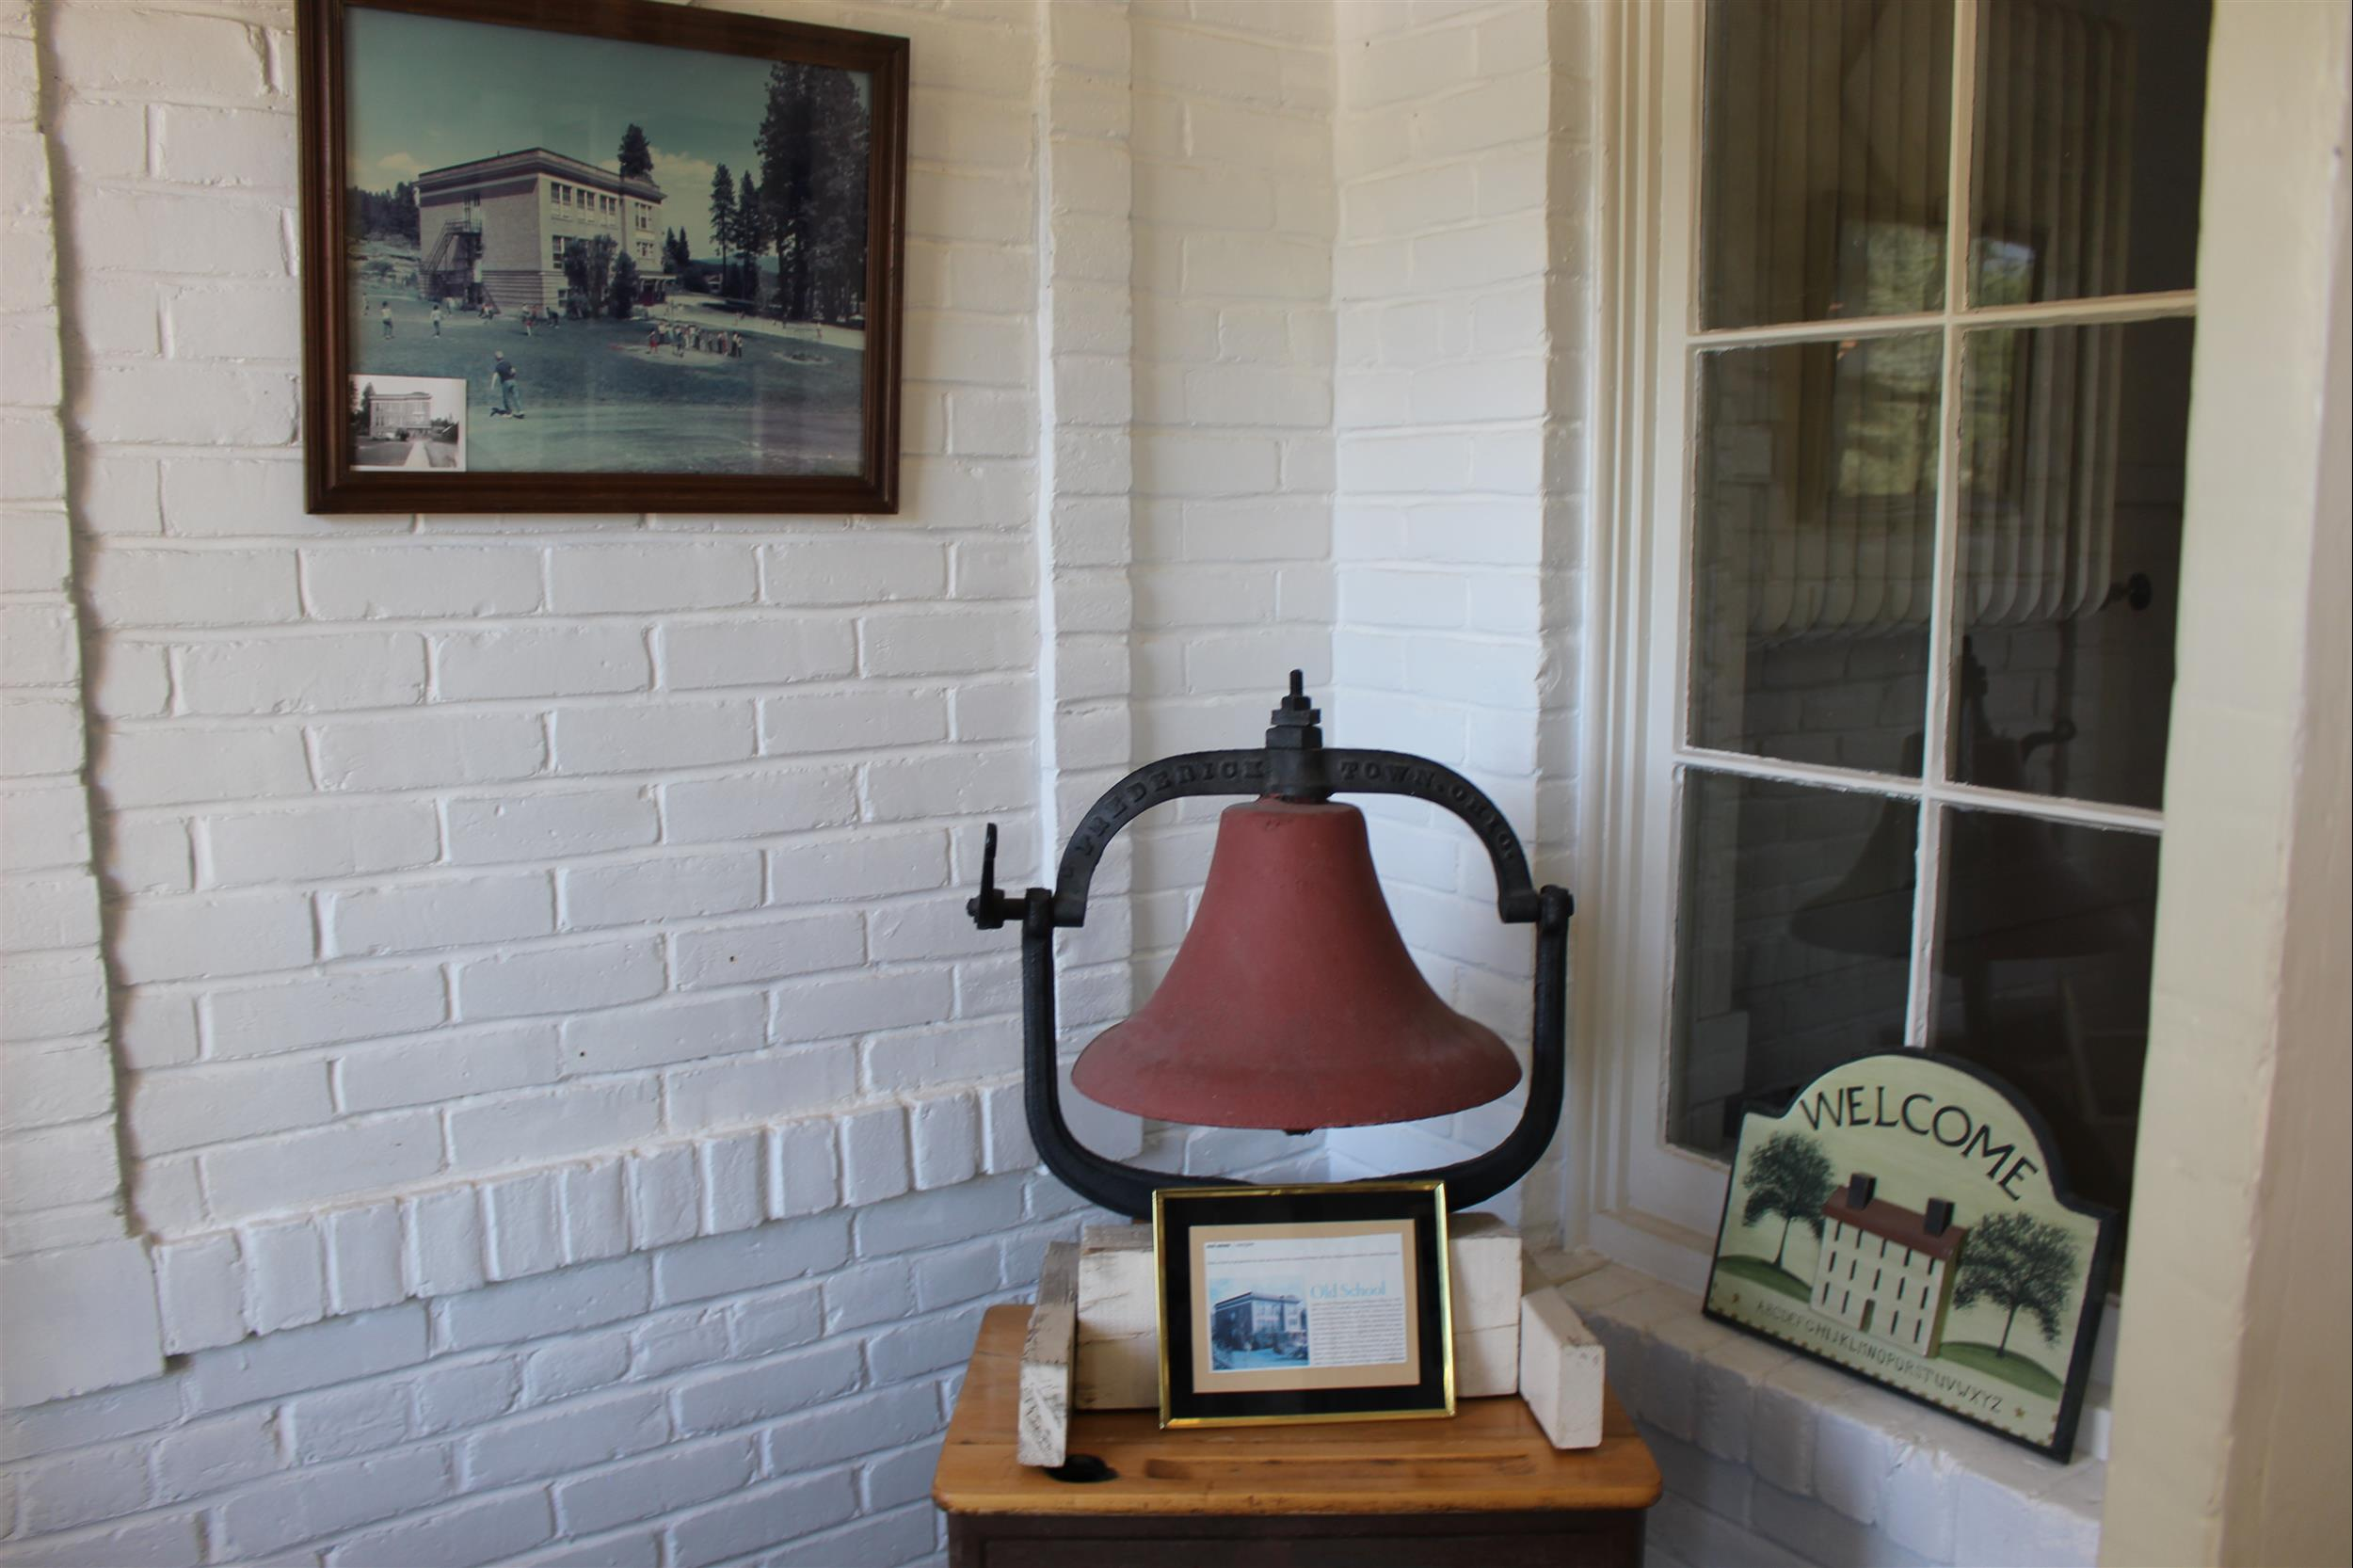 old school bell and photo of school house